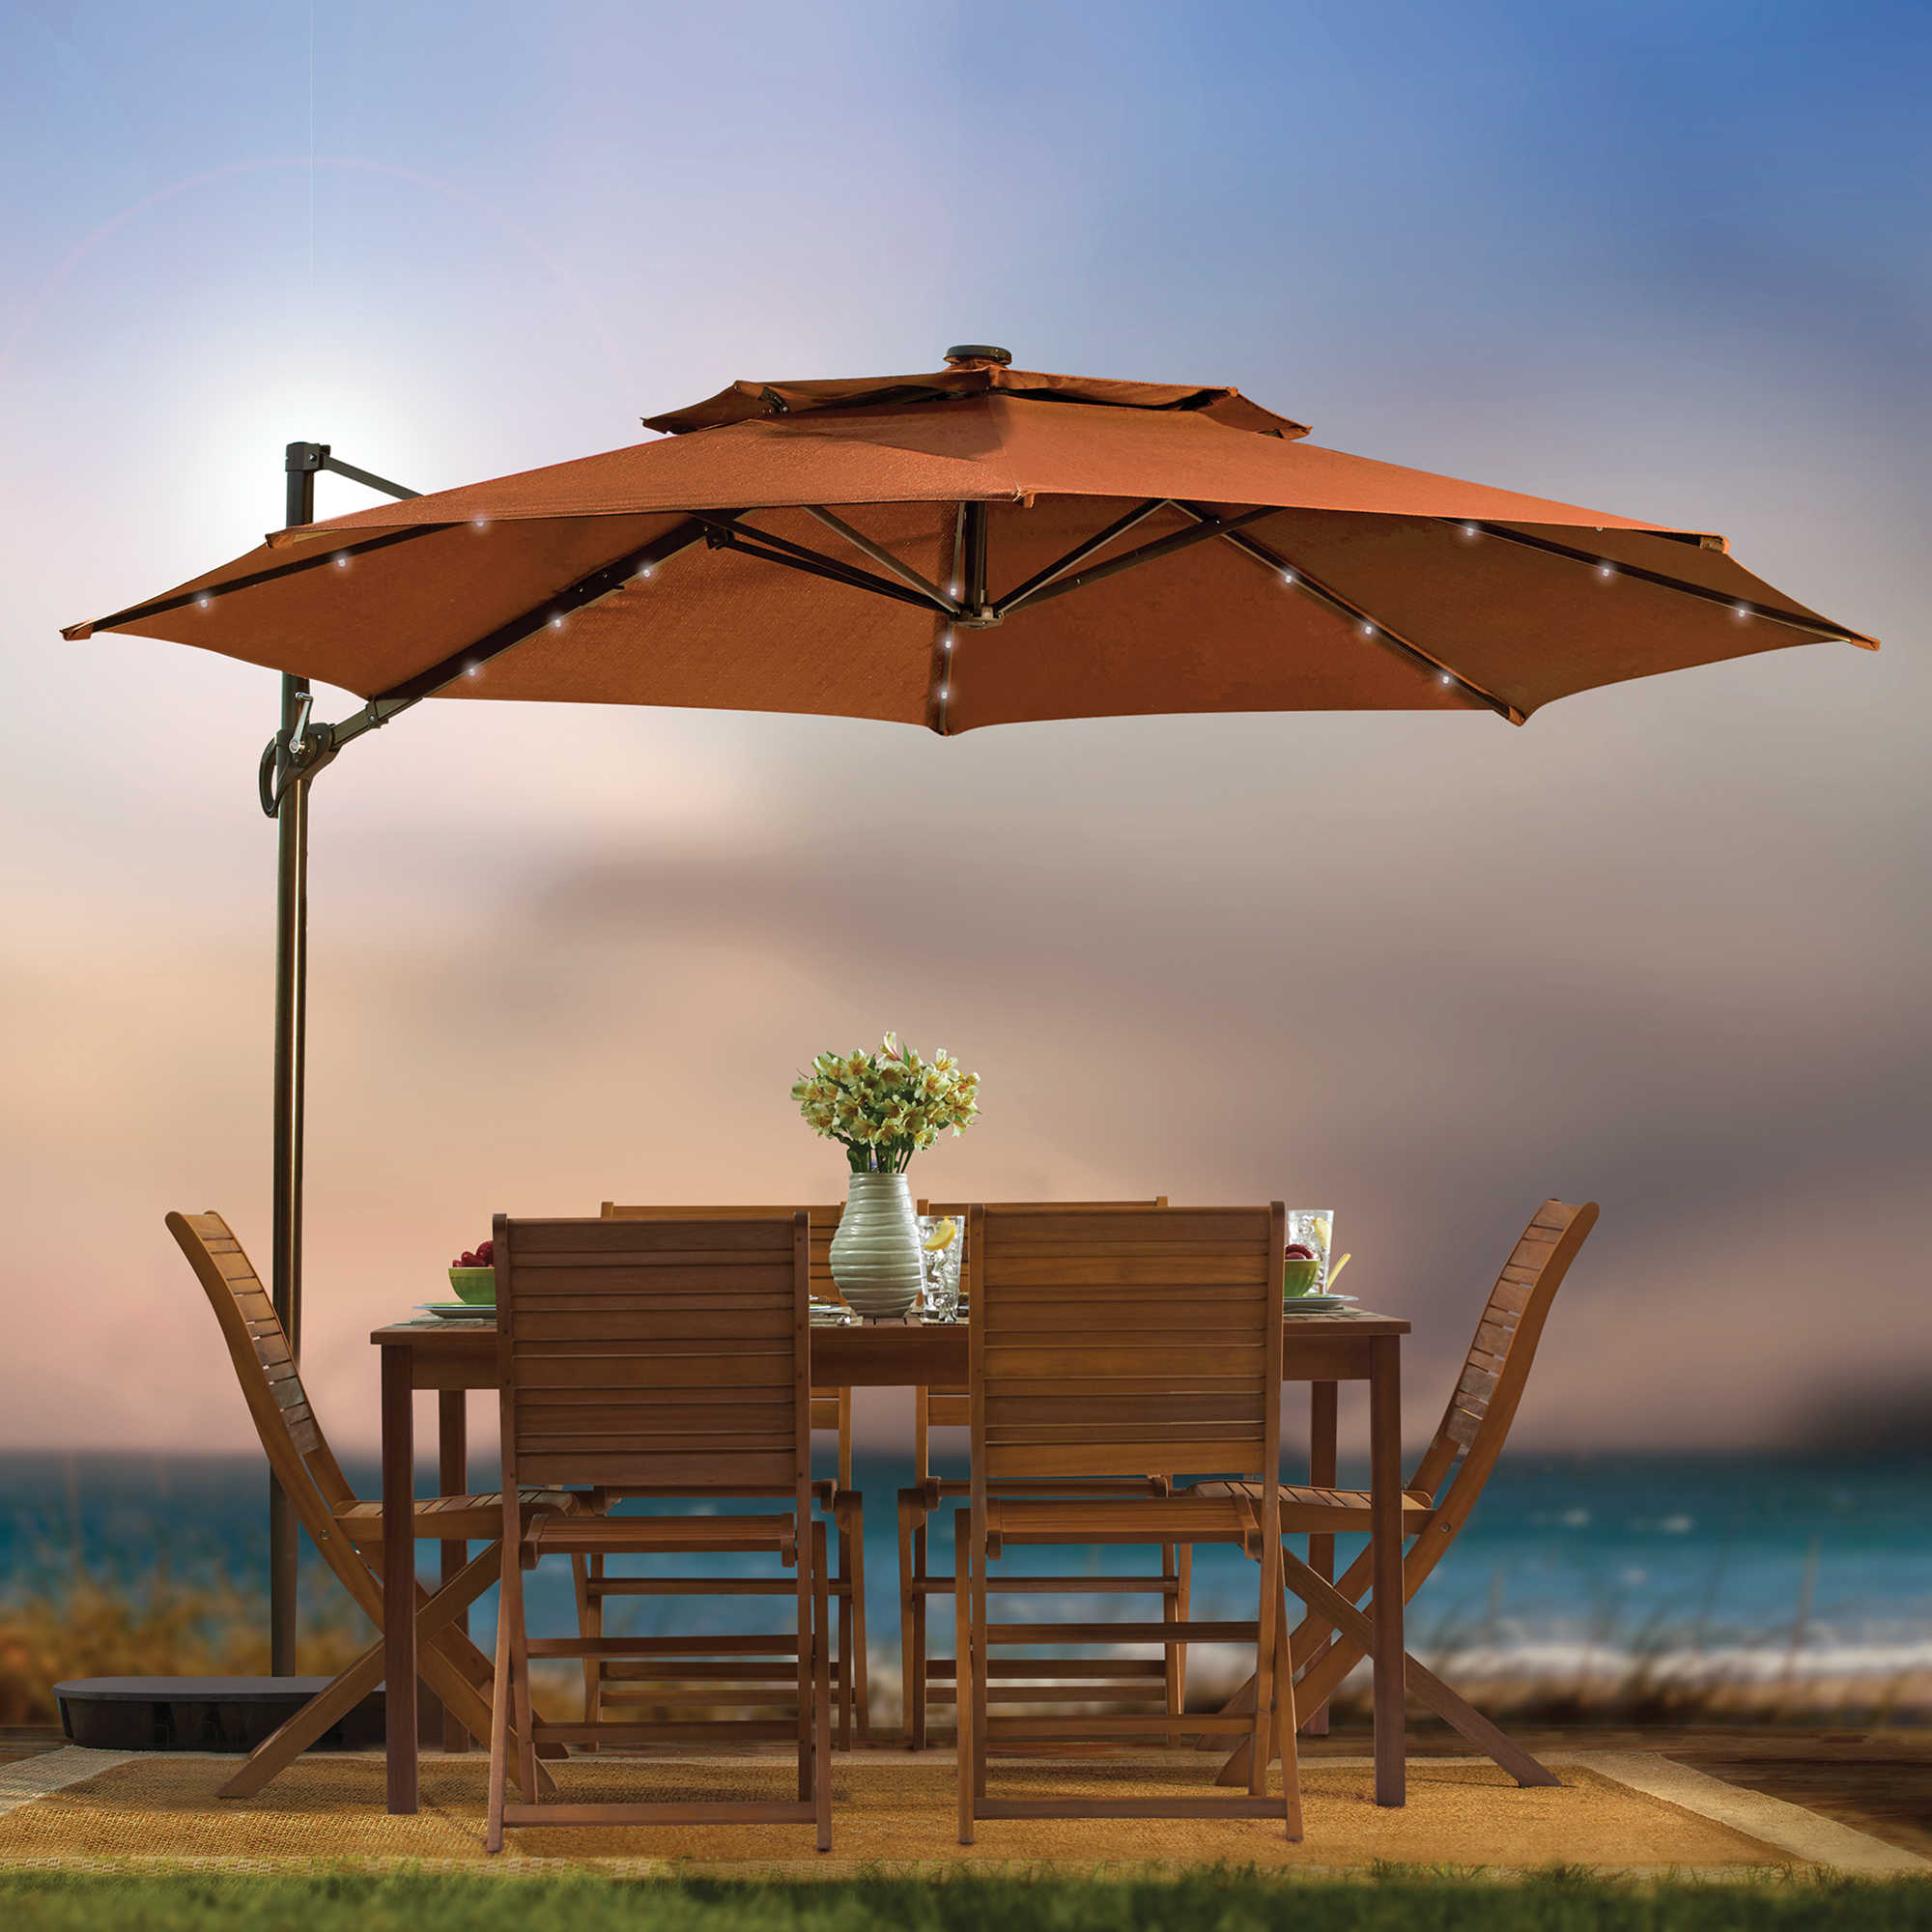 patio ideas large cantilever umbrella with teak furniture set and vase design swing arm outdoor coffee table ikea sunbrella pillows deluxe metal bench inexpensive hammocks antique